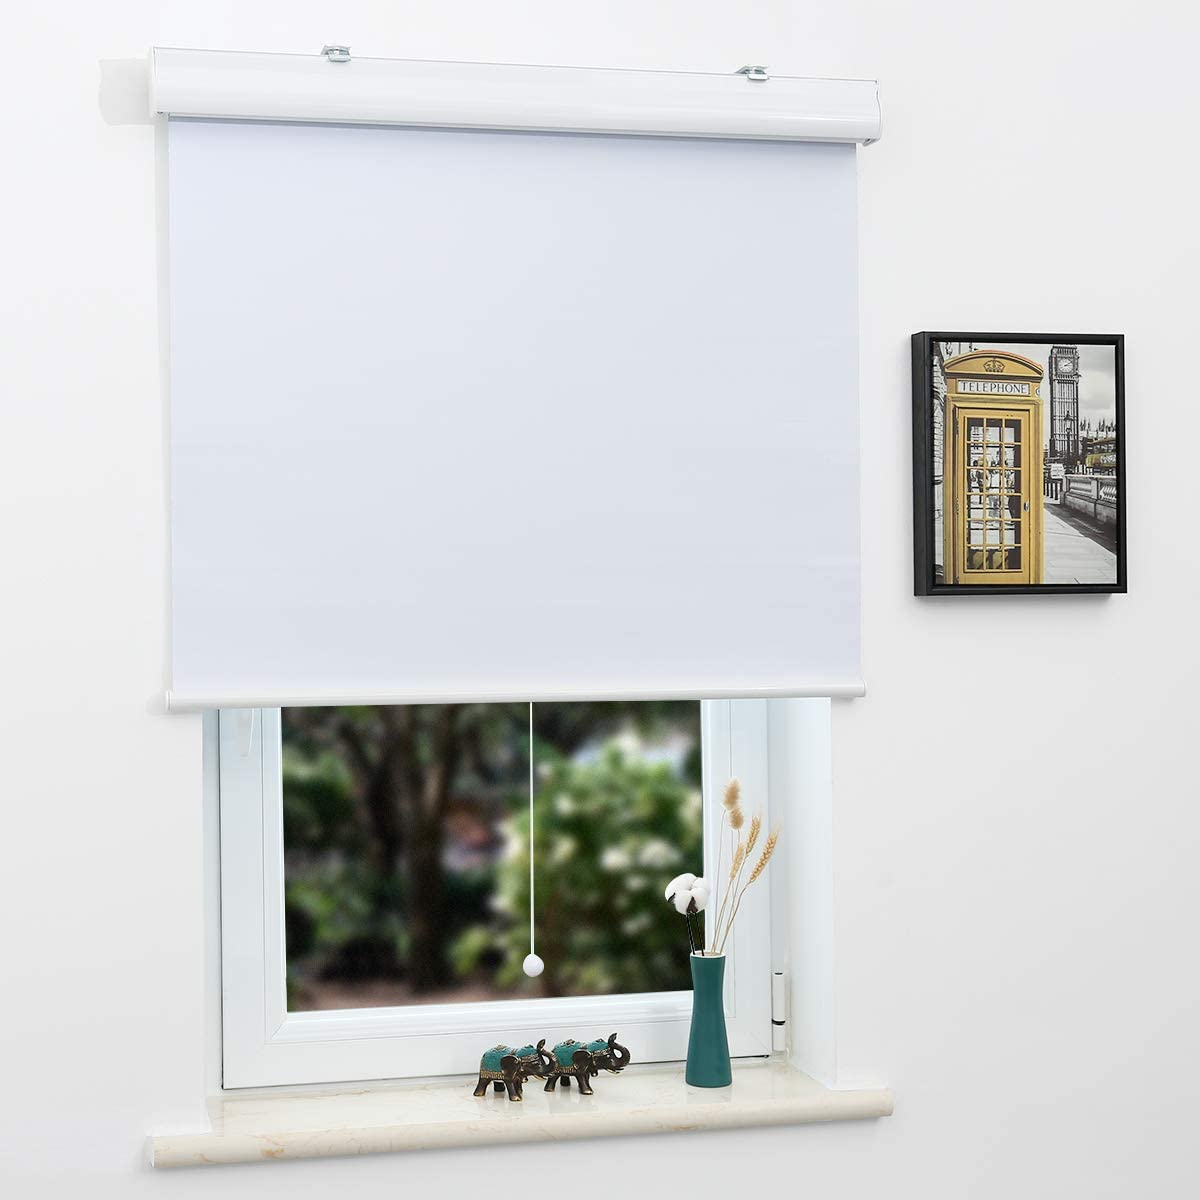 SUNFREE Blackout Window Shades Cordless Roller Shades for Window and Door, Home and Office, White(Upgrade Version), 32